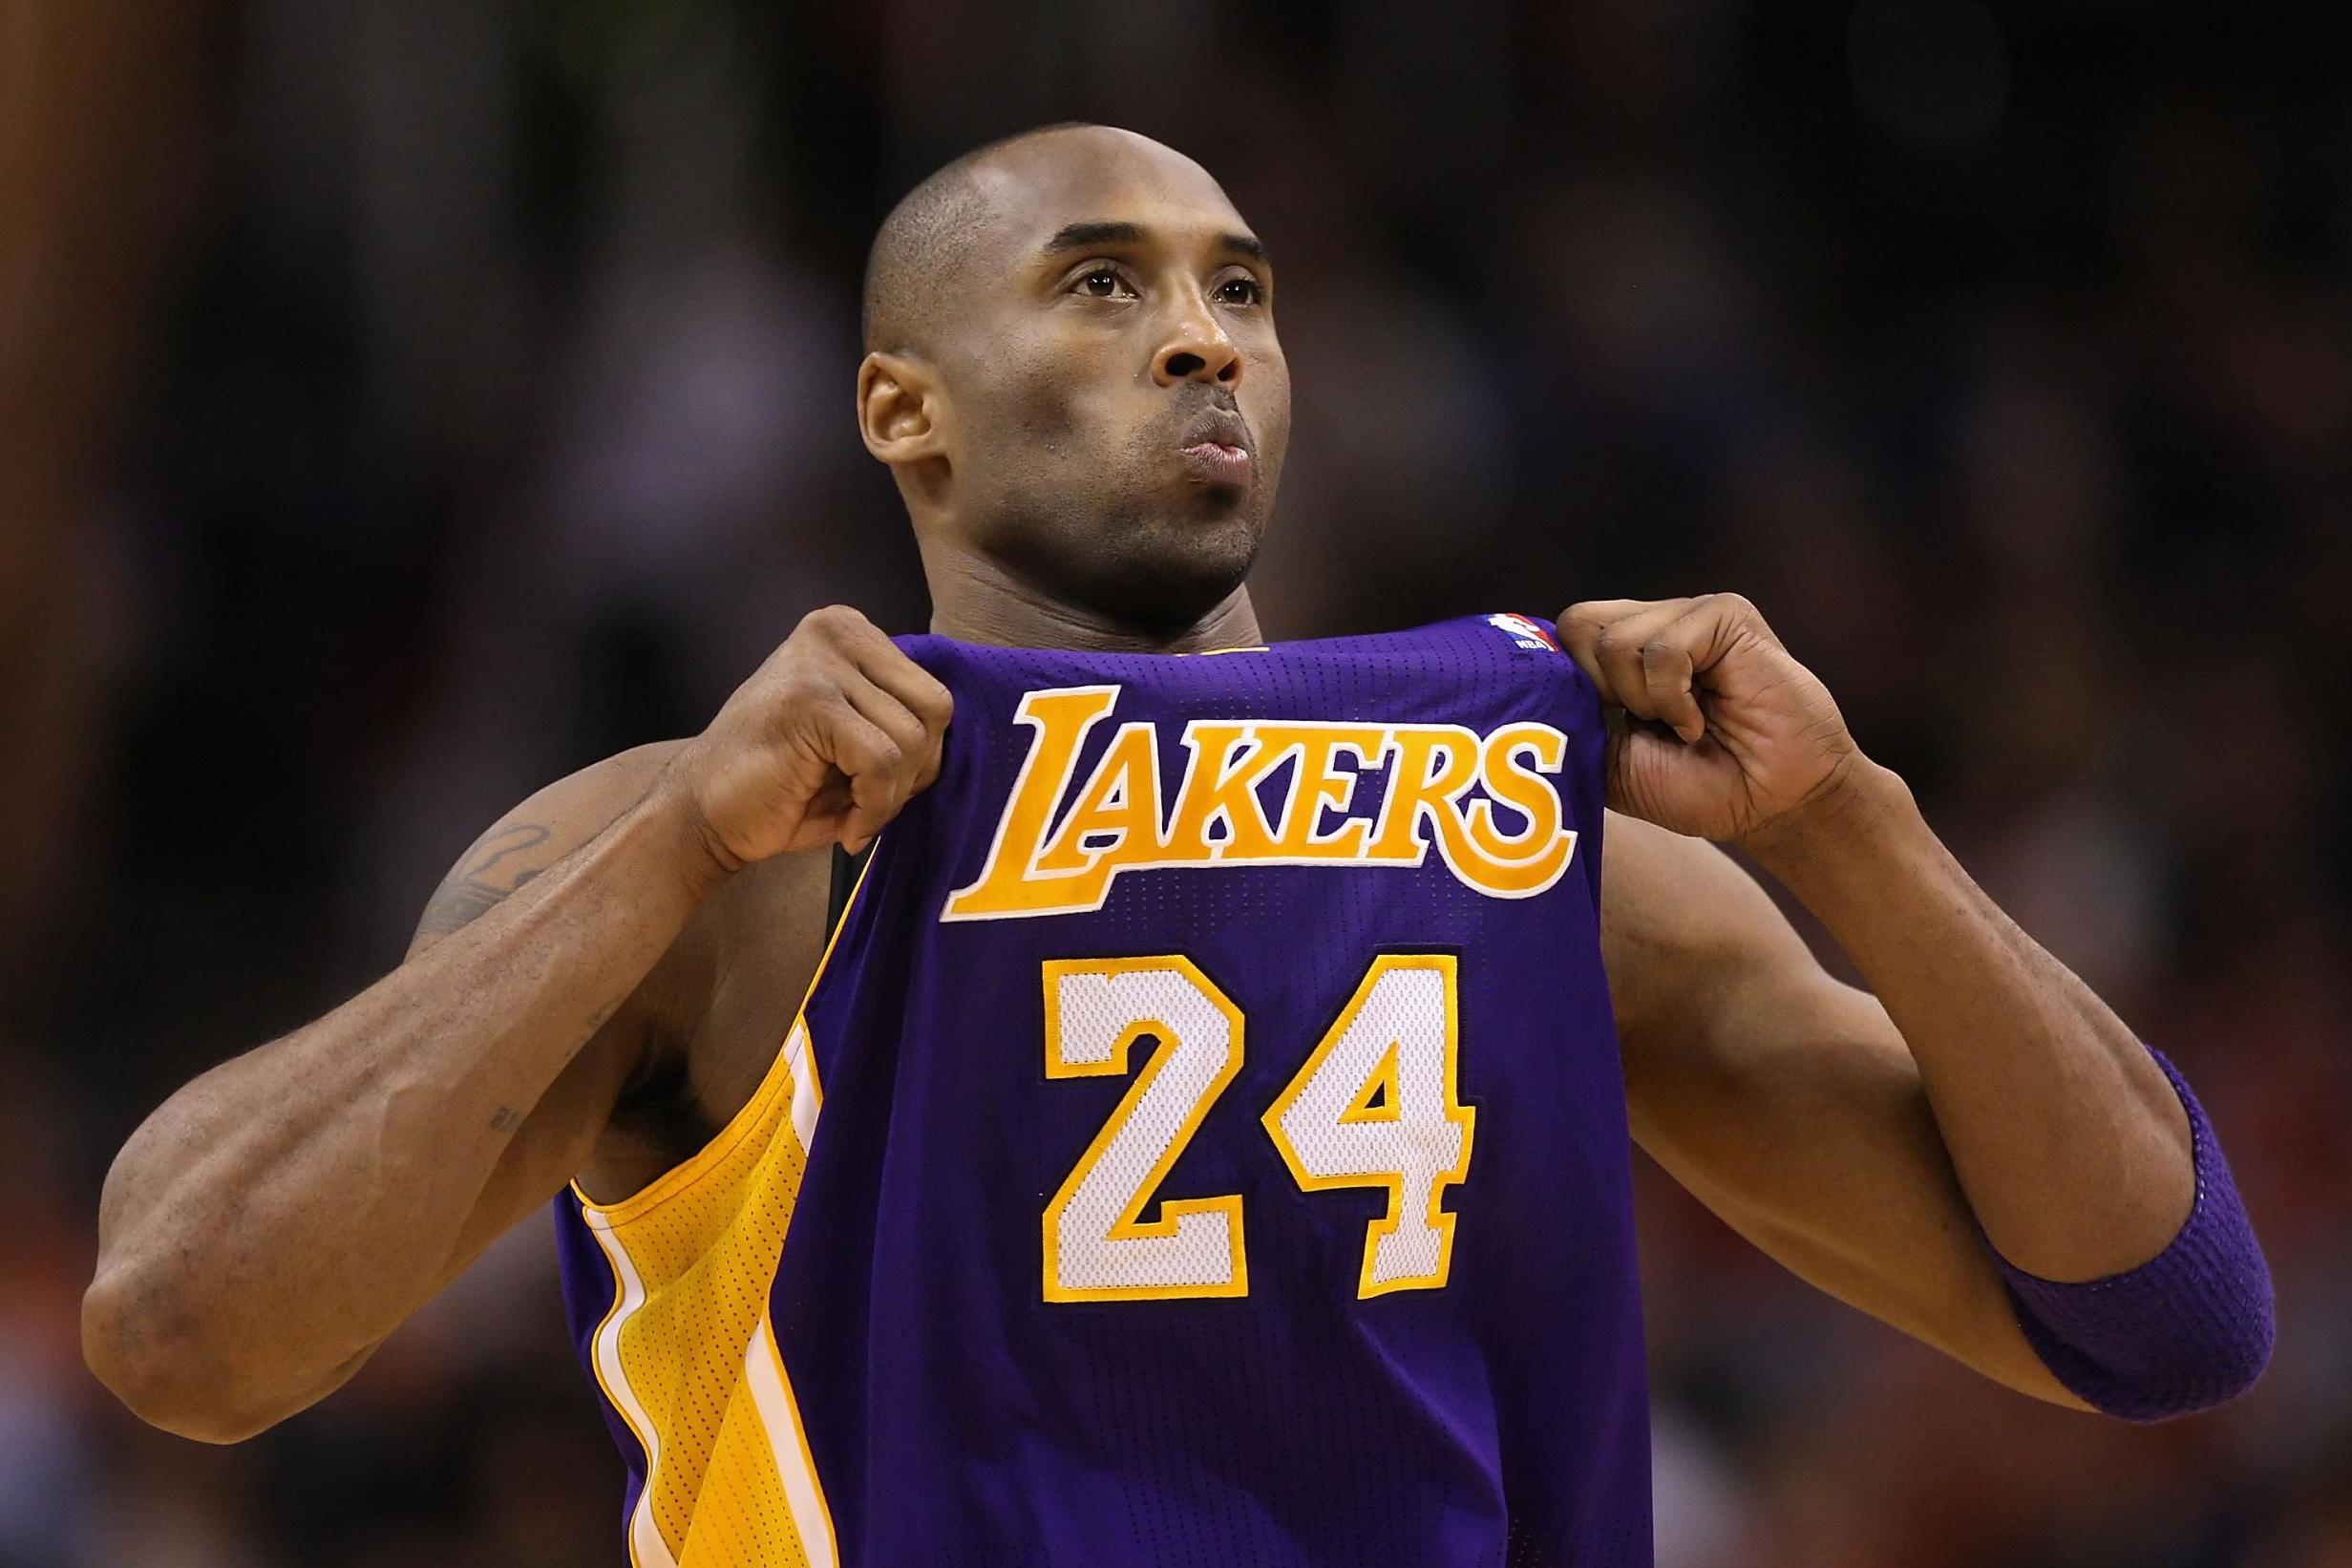 Kobe Bryant has died. It's OK to talk about his rape case